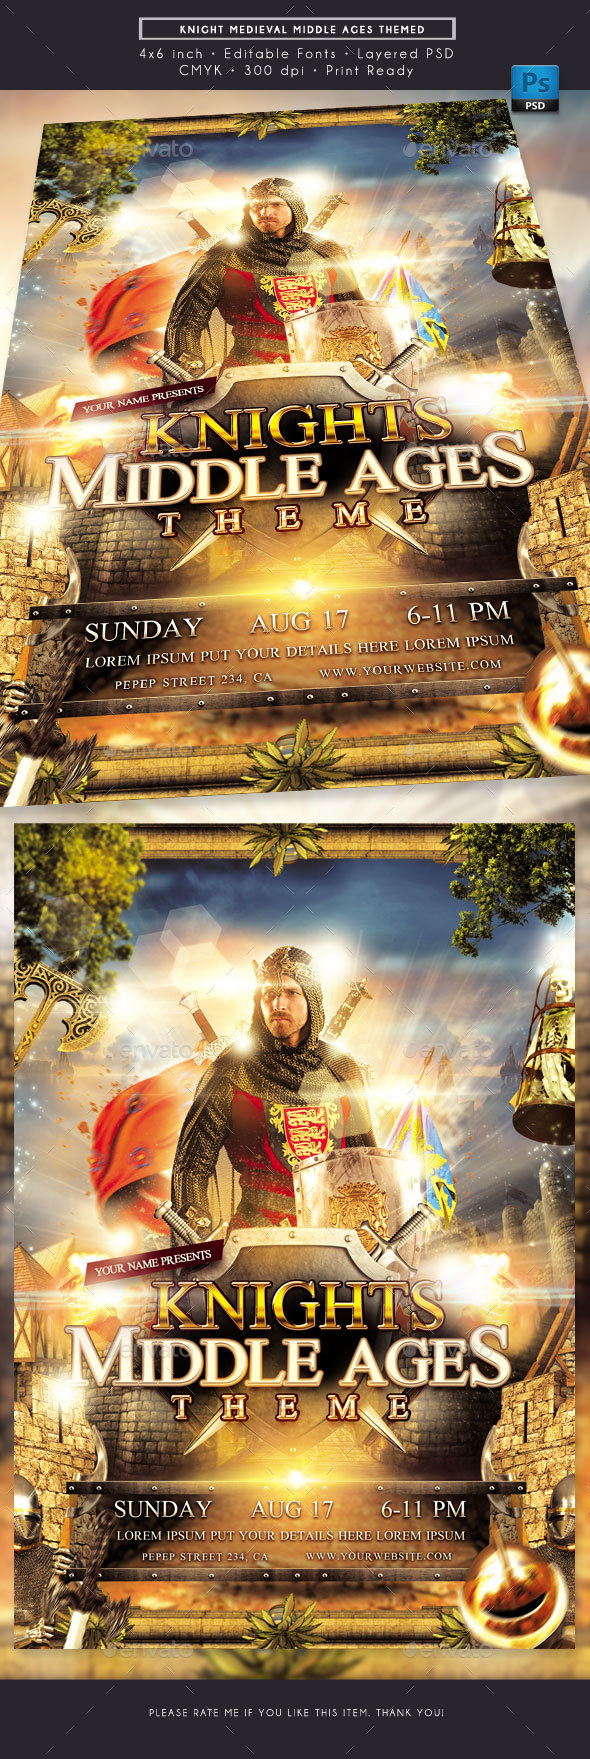 Knights Medieval Middle Ages Themed Flyer - Events Flyers